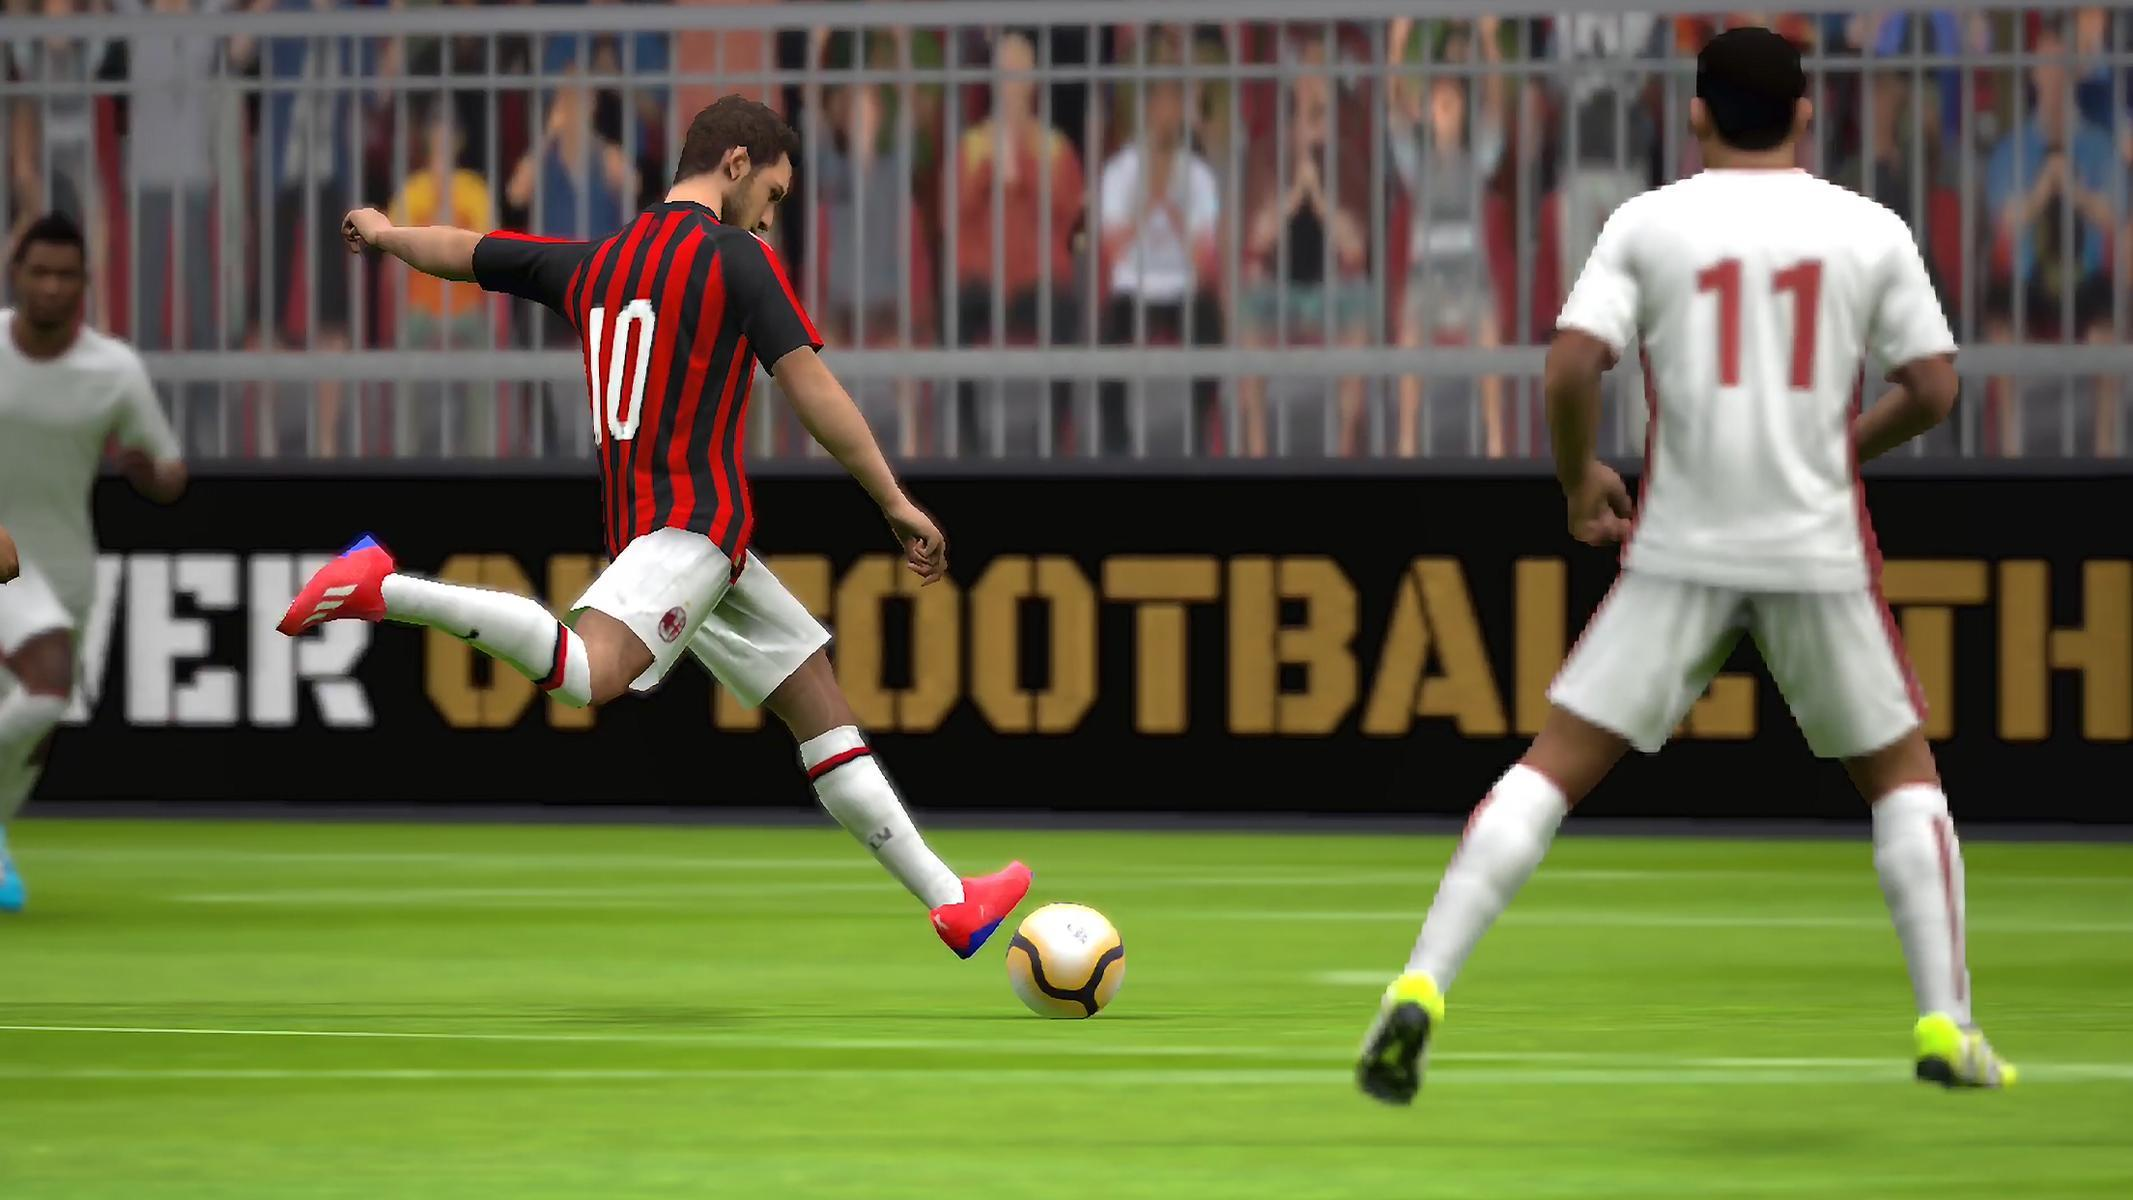 Download PRO EVOLUTION SOCCER (PES 2018) APK Latest Version